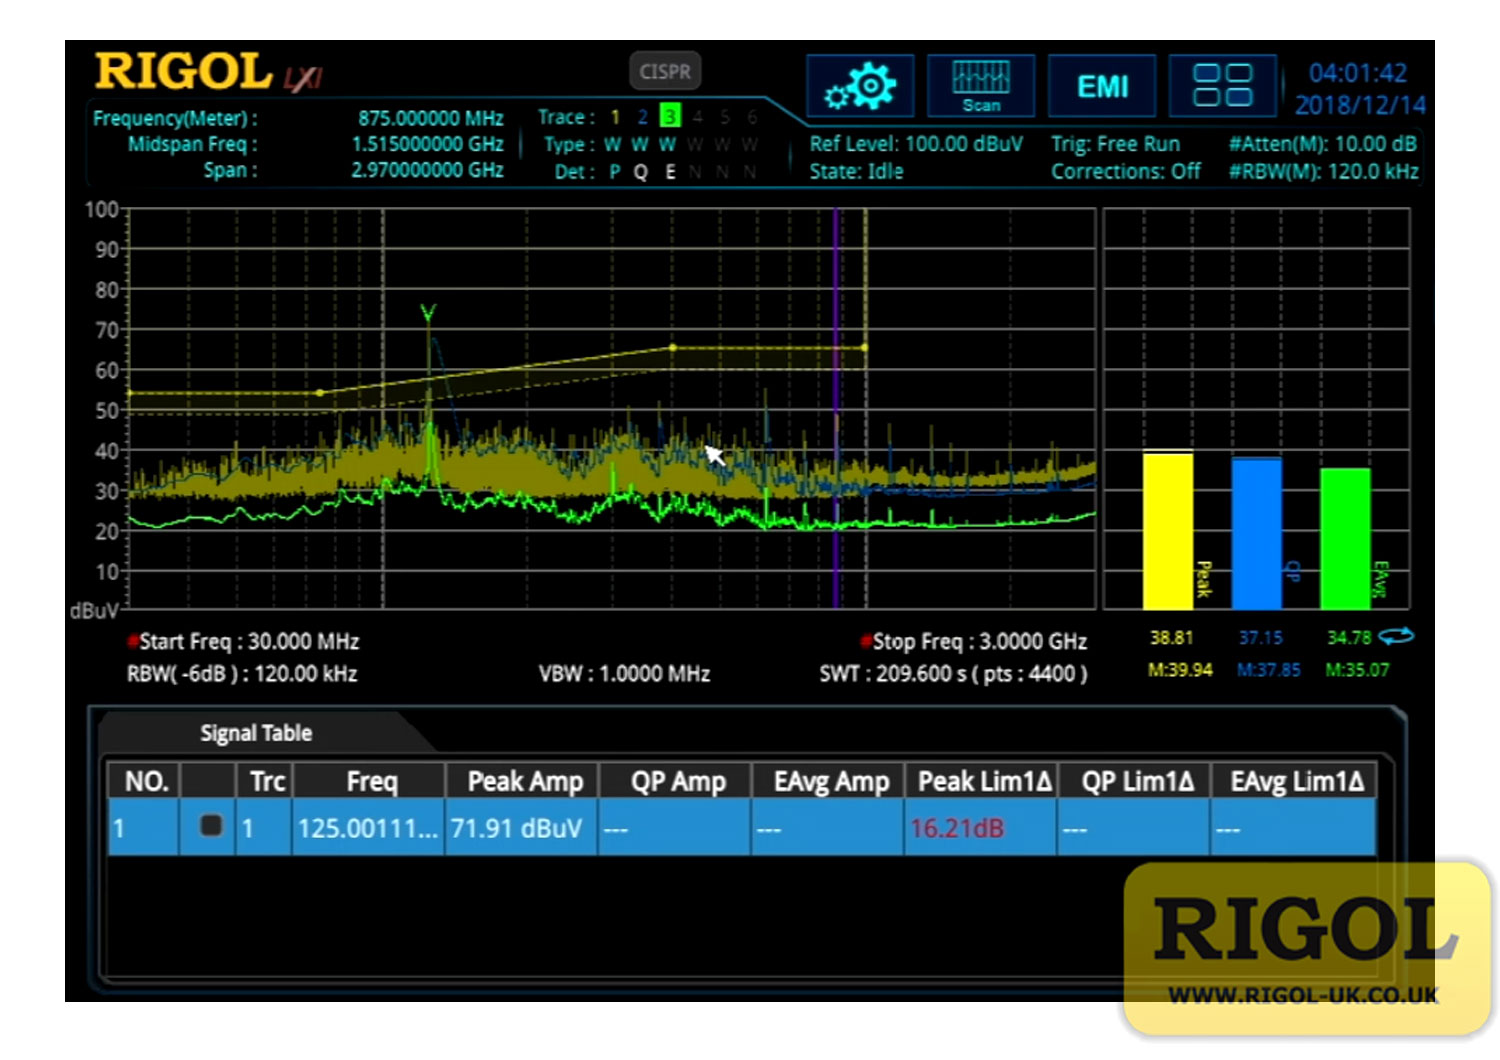 Rigol RSA5000-EMI Measurement Mode Option